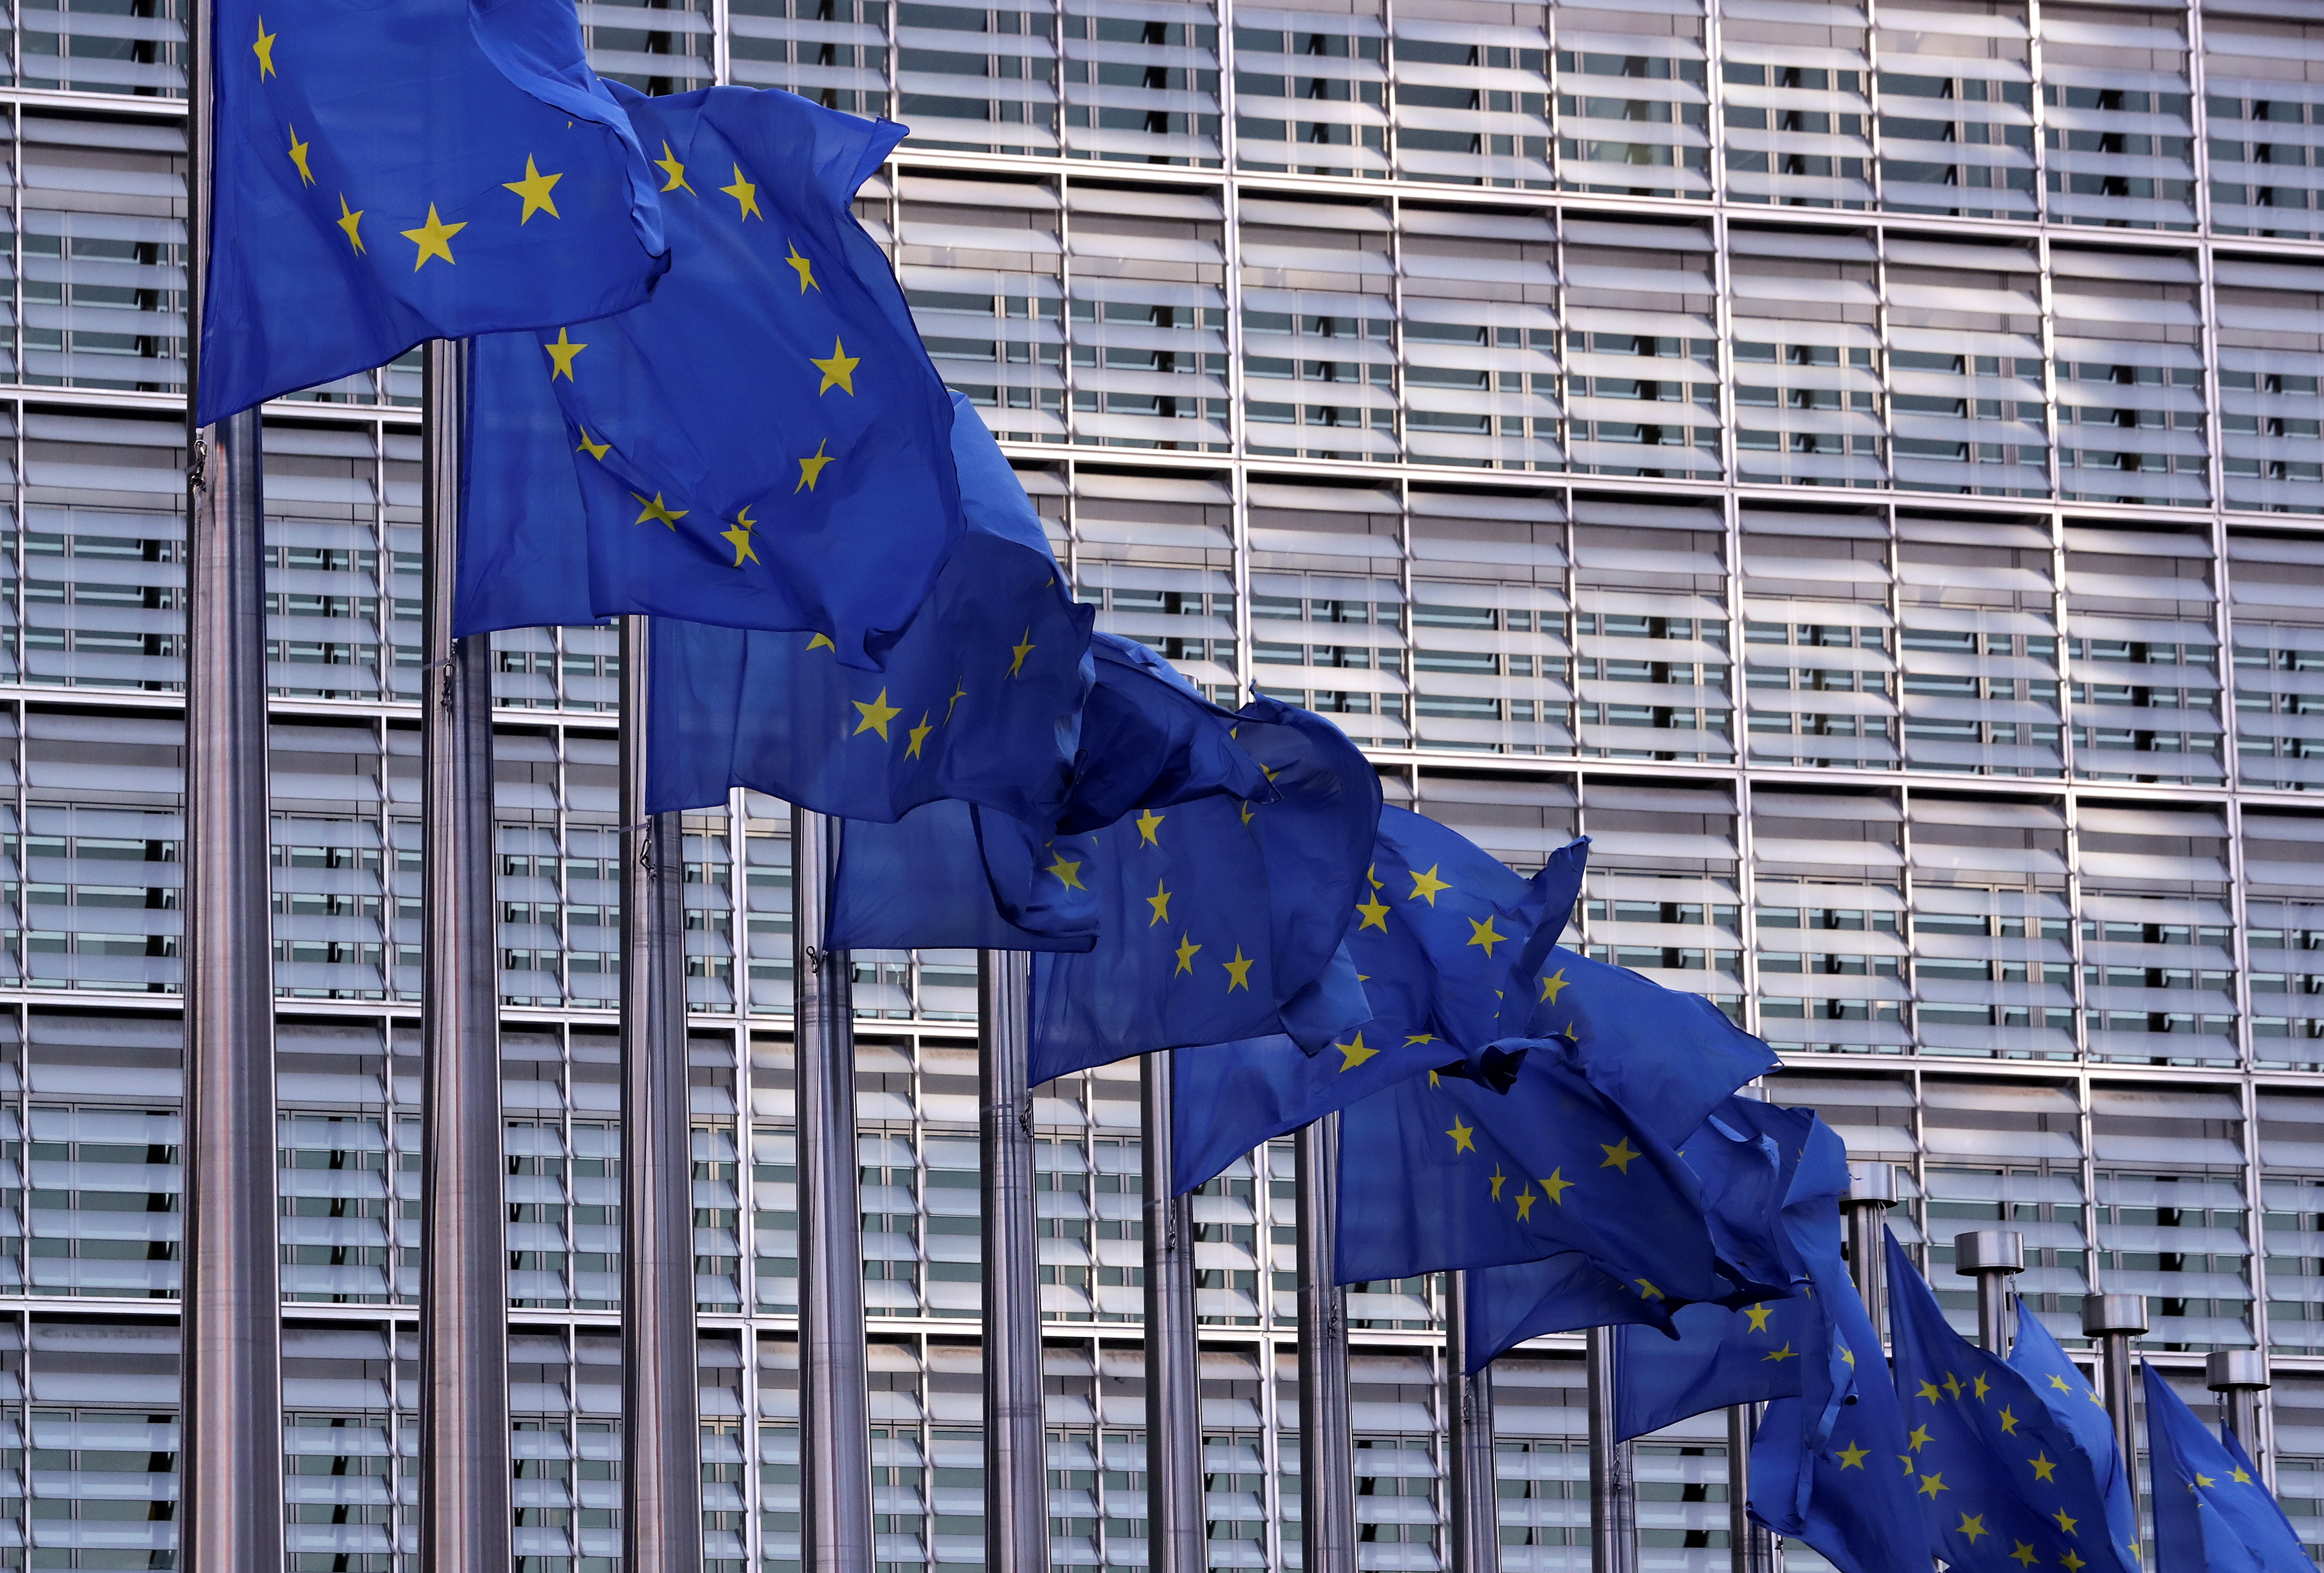 European Union flags fly outside the European Commission headquarters in Brussels, Belgium, February 19, 2020. REUTERS/Yves Herman/File Photo